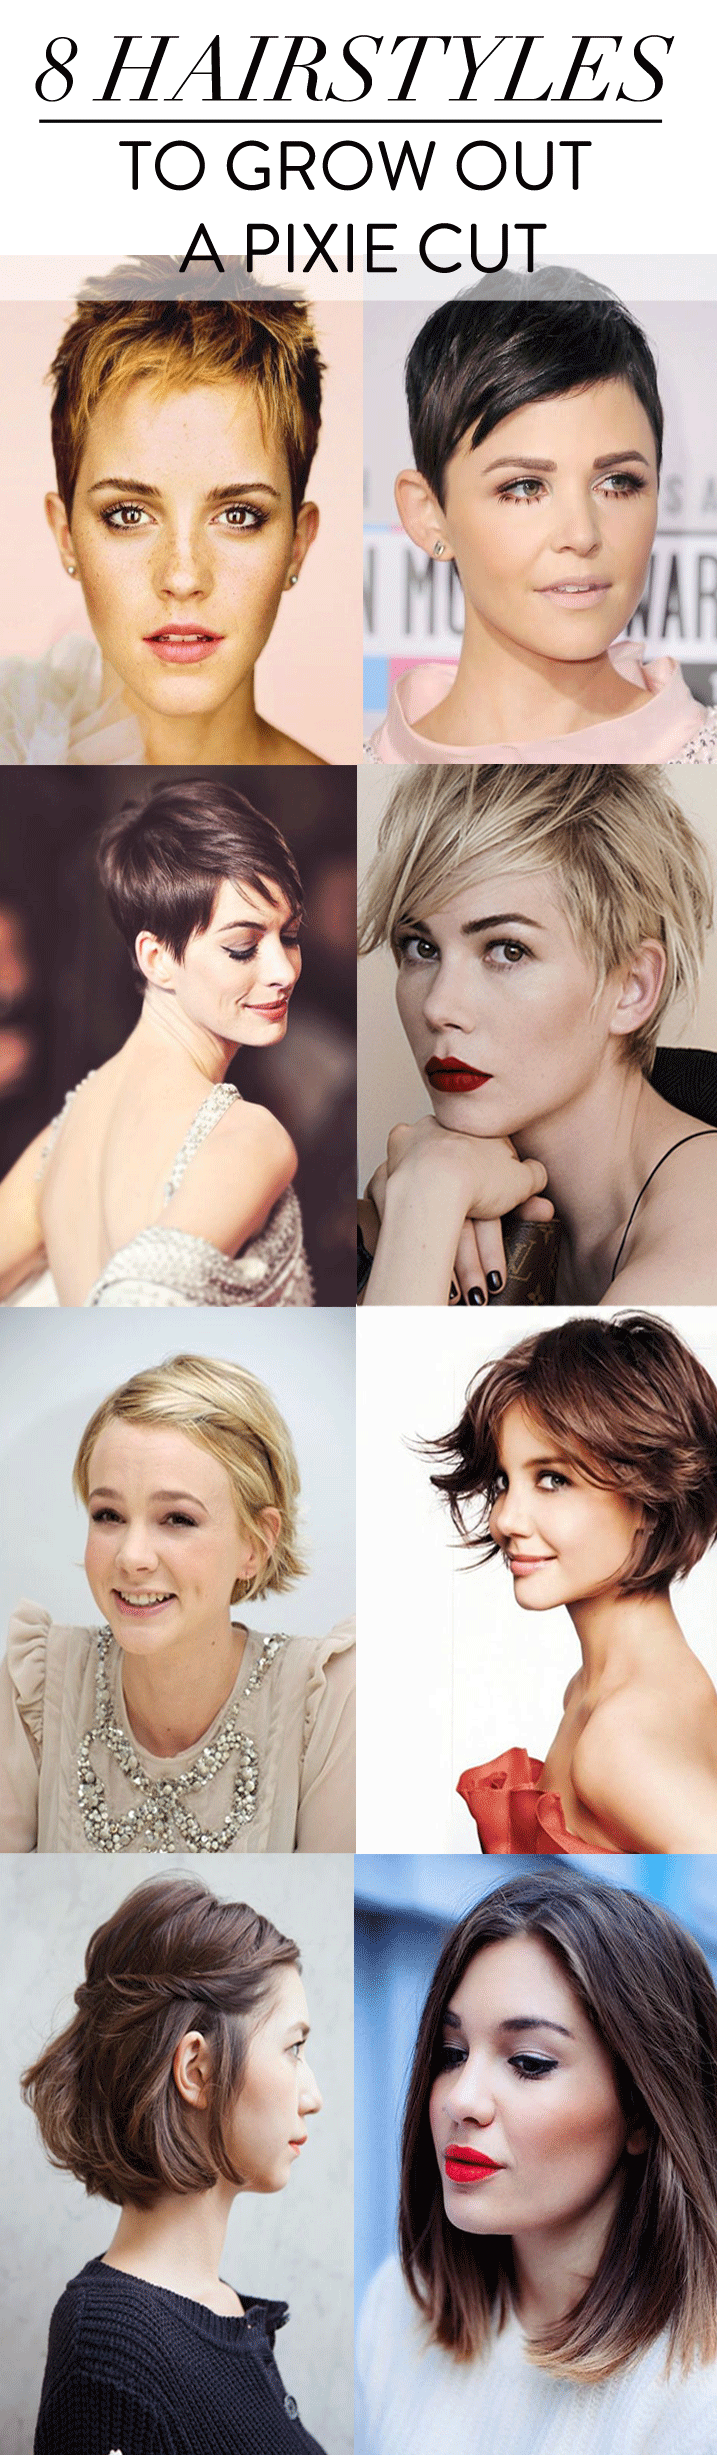 how to style pixie cut hair pixie haircut growing out haircuts models ideas 3132